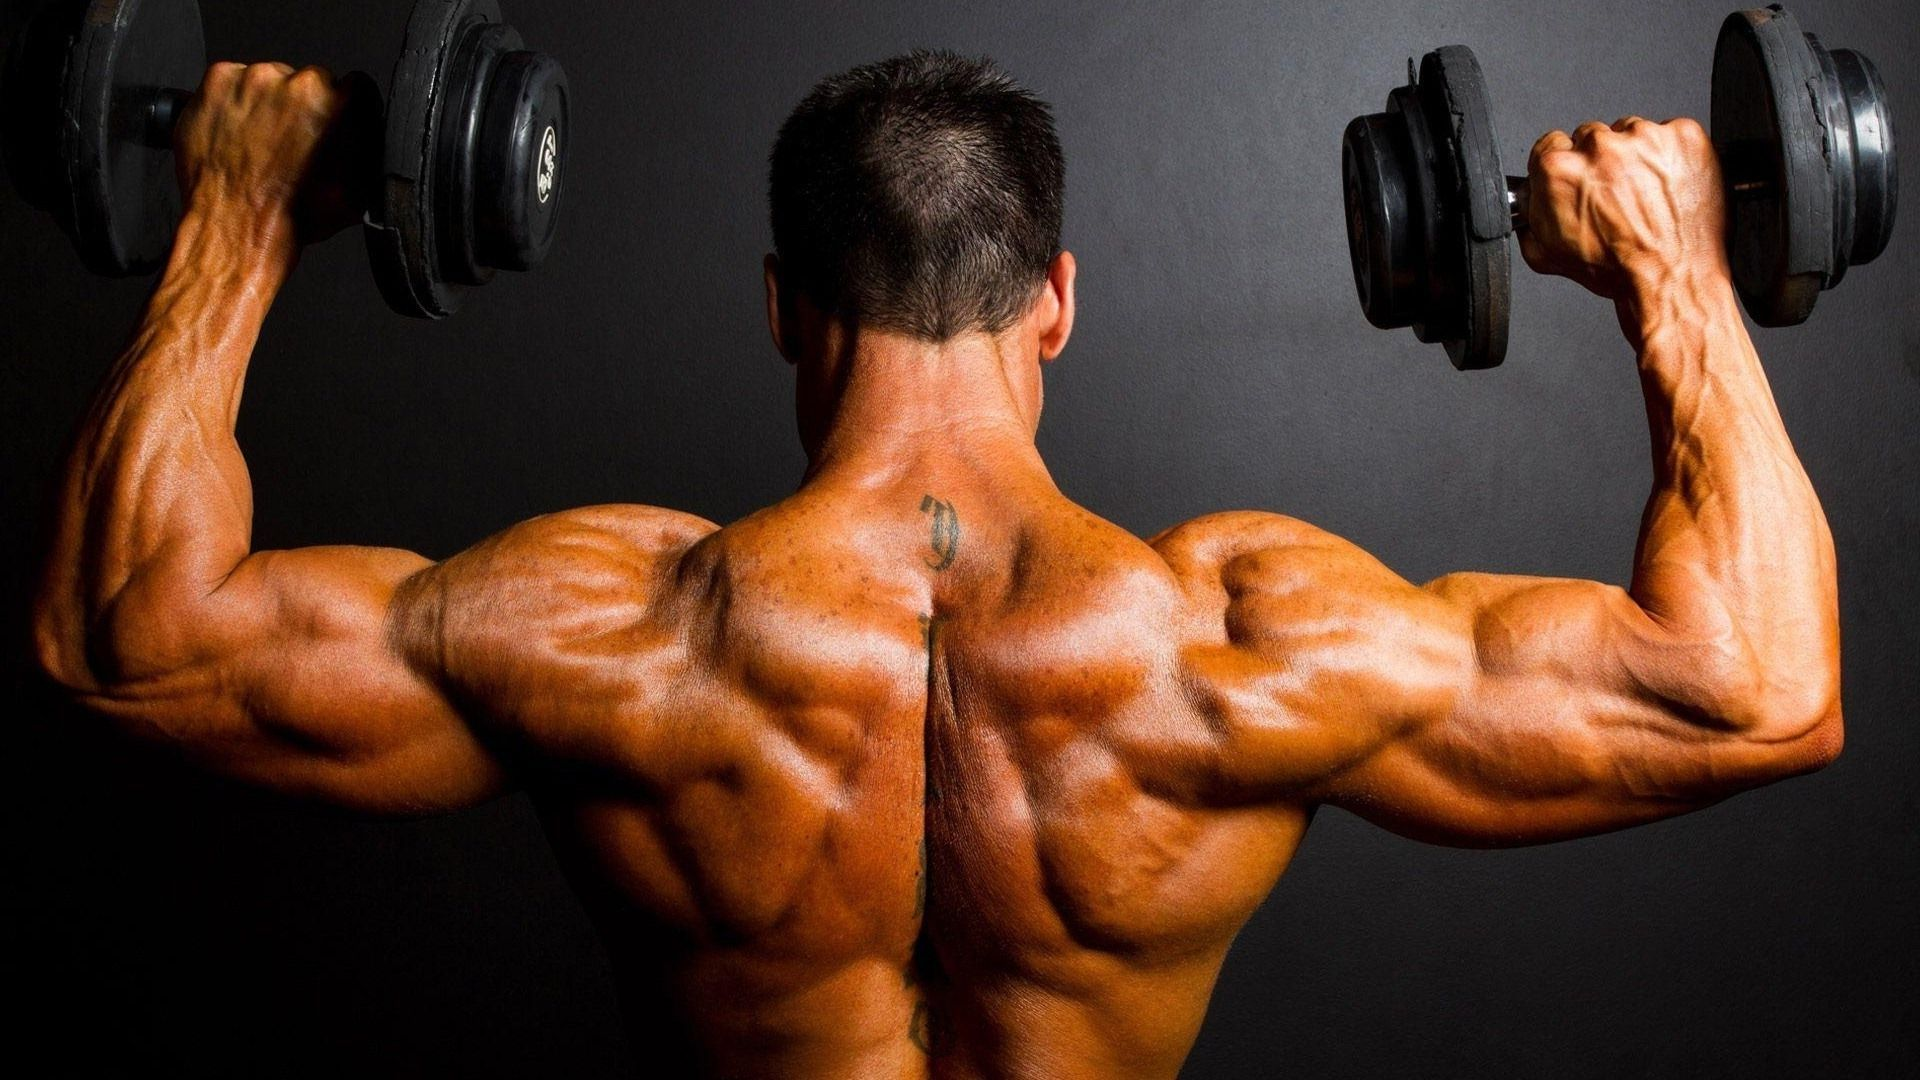 1920x1080 Wallpapers Bodybuilding Group (73+)